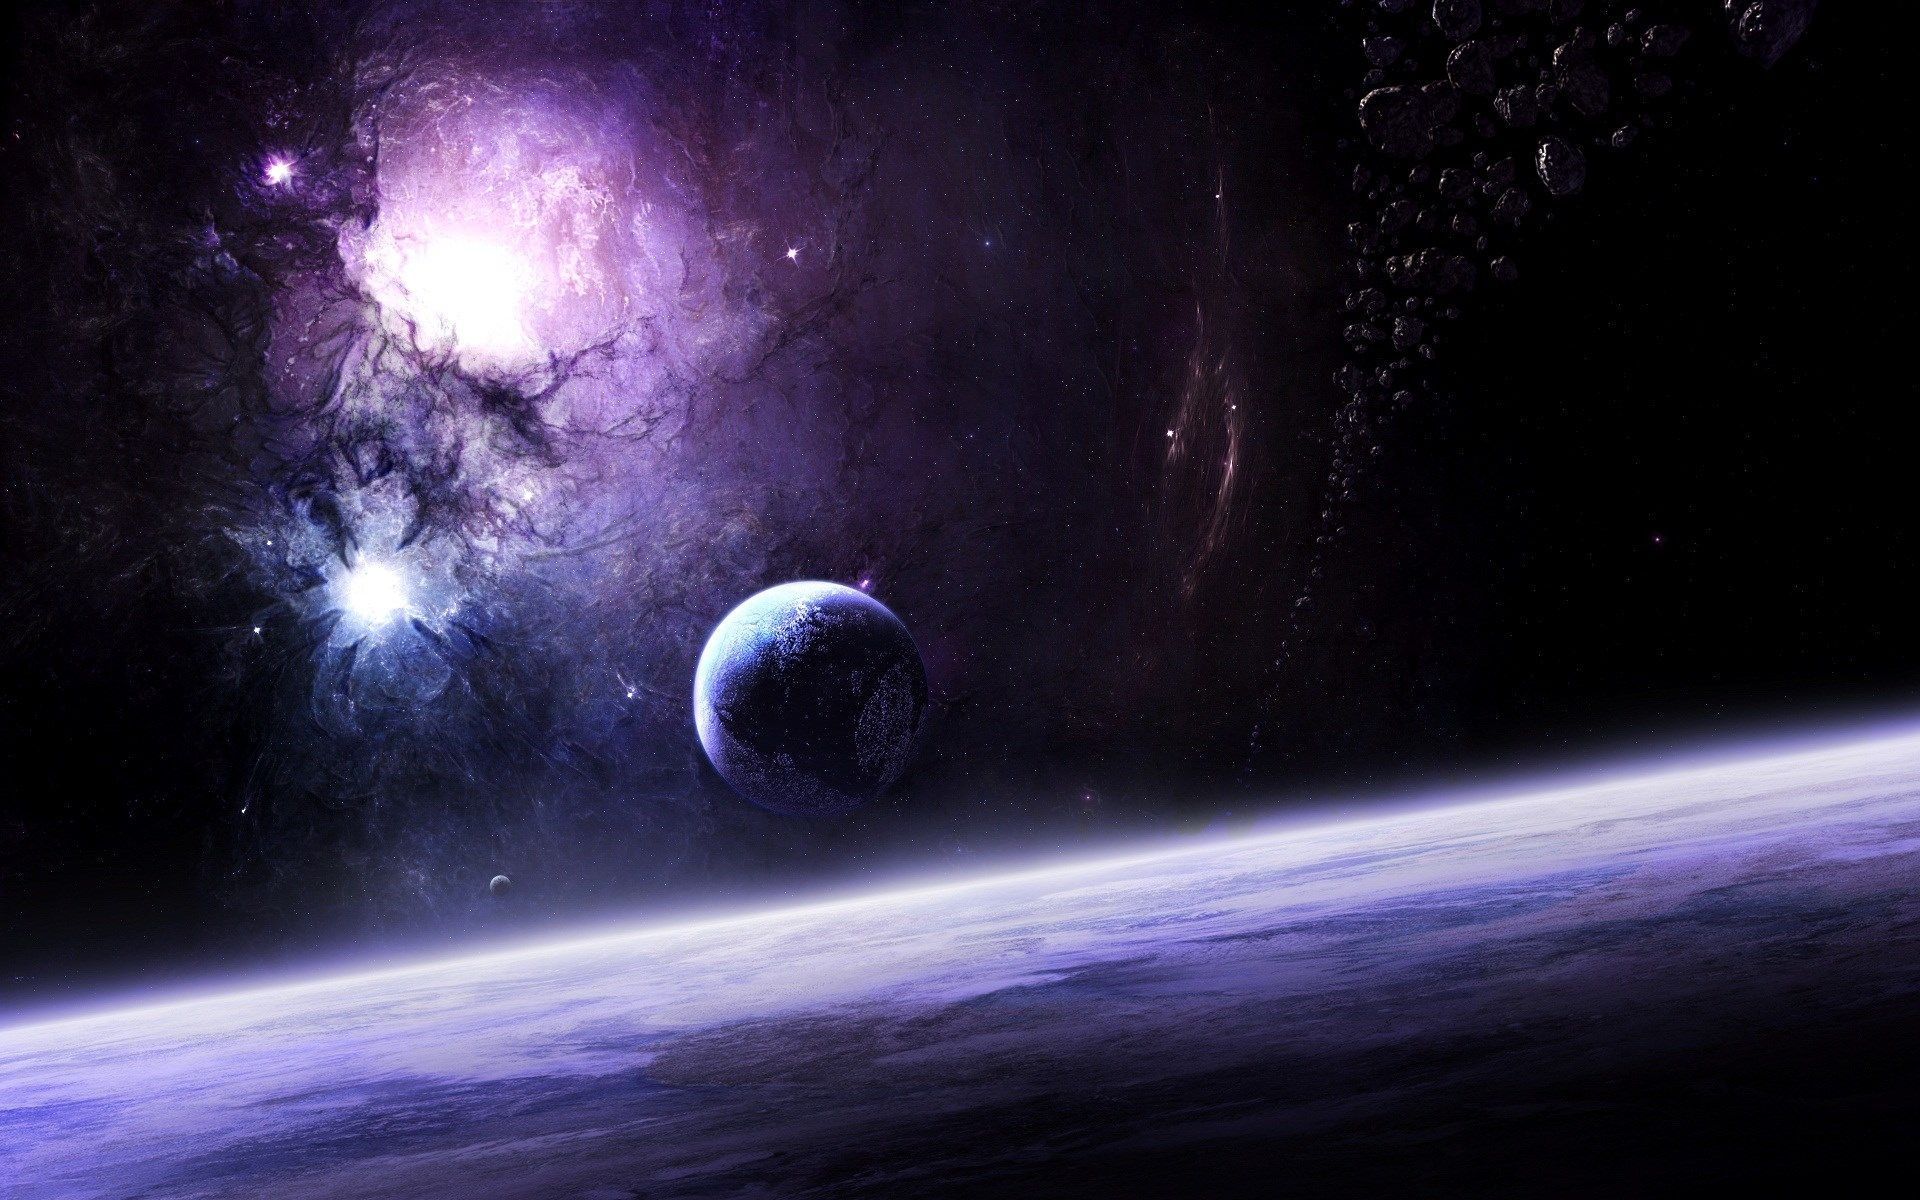 space hd high resolution widescreen backgrounds 1920x1200 1920x1200